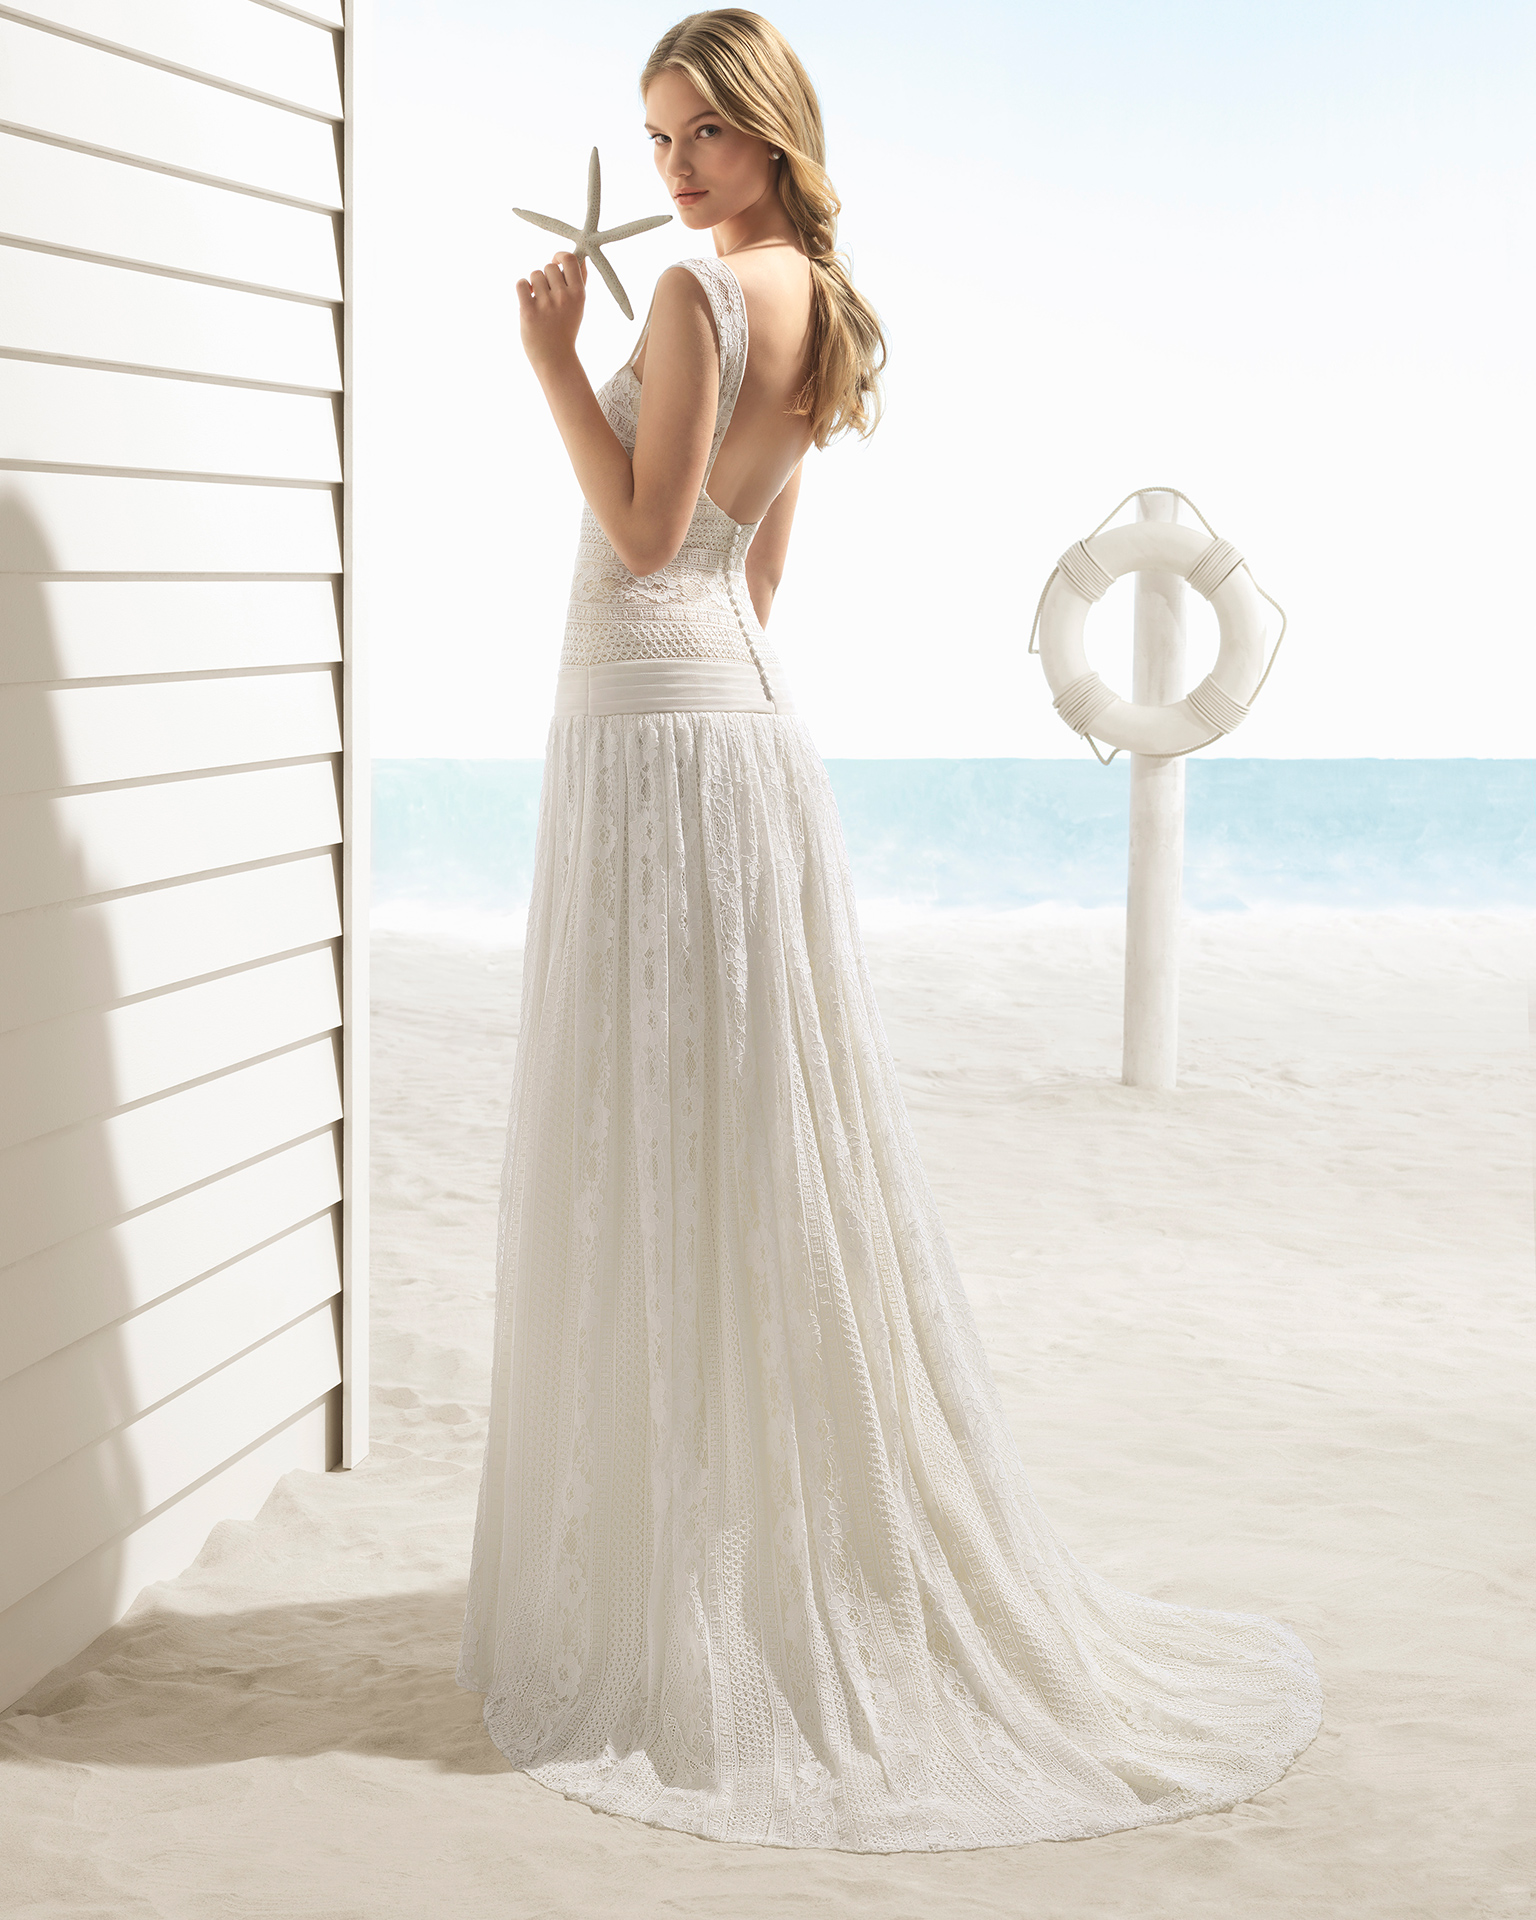 A-line lace wedding dress with low back, in ivory.